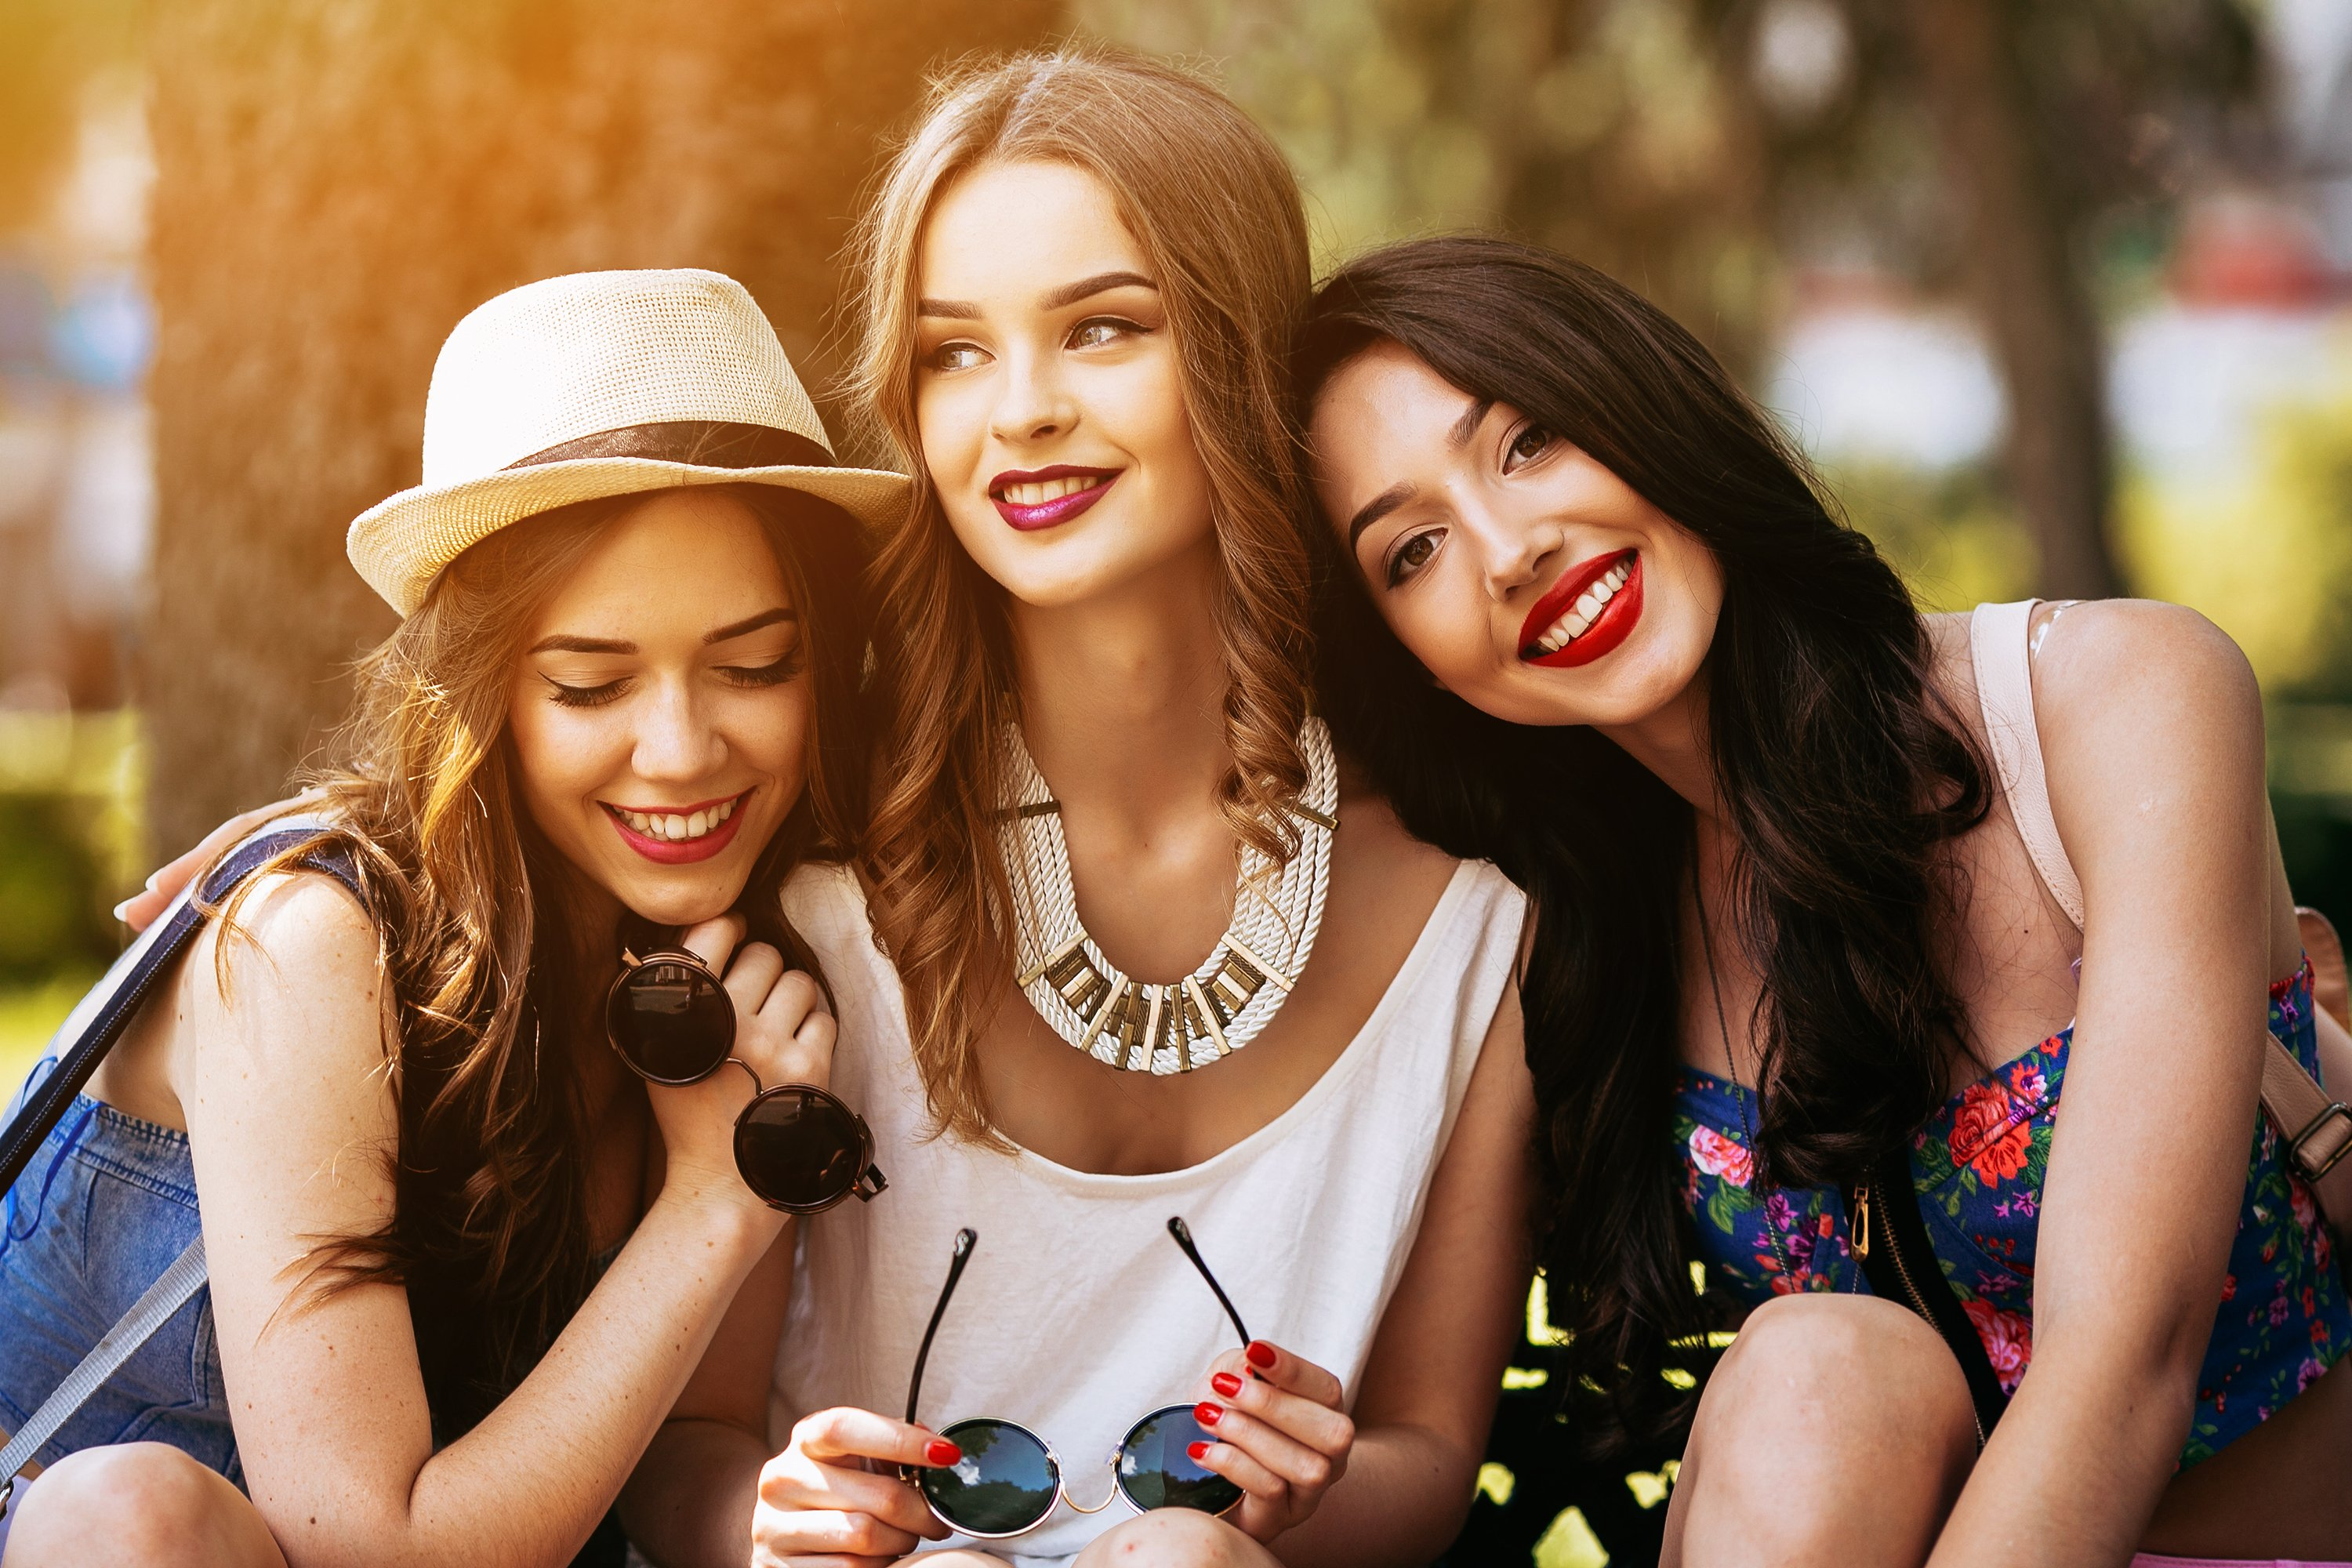 Three,Beautiful,Young,Girls,Posing,Against,The,Backdrop,Of,The